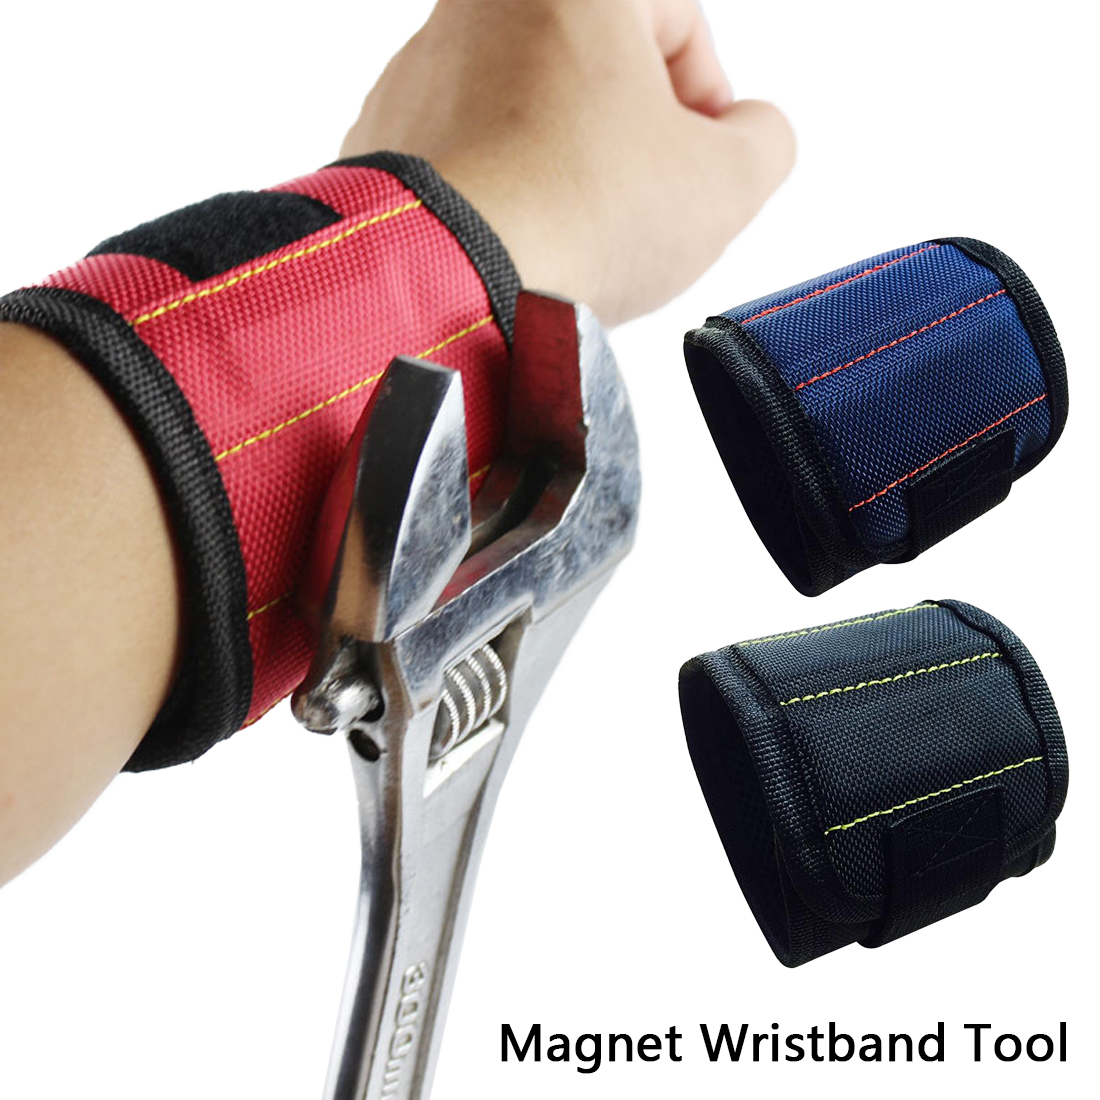 Strong Magnetic Bracelet For Tools Magnetic Wristband Portable Small Tool Bag Magnets Screws Nails Drill Bits Electrician Bag